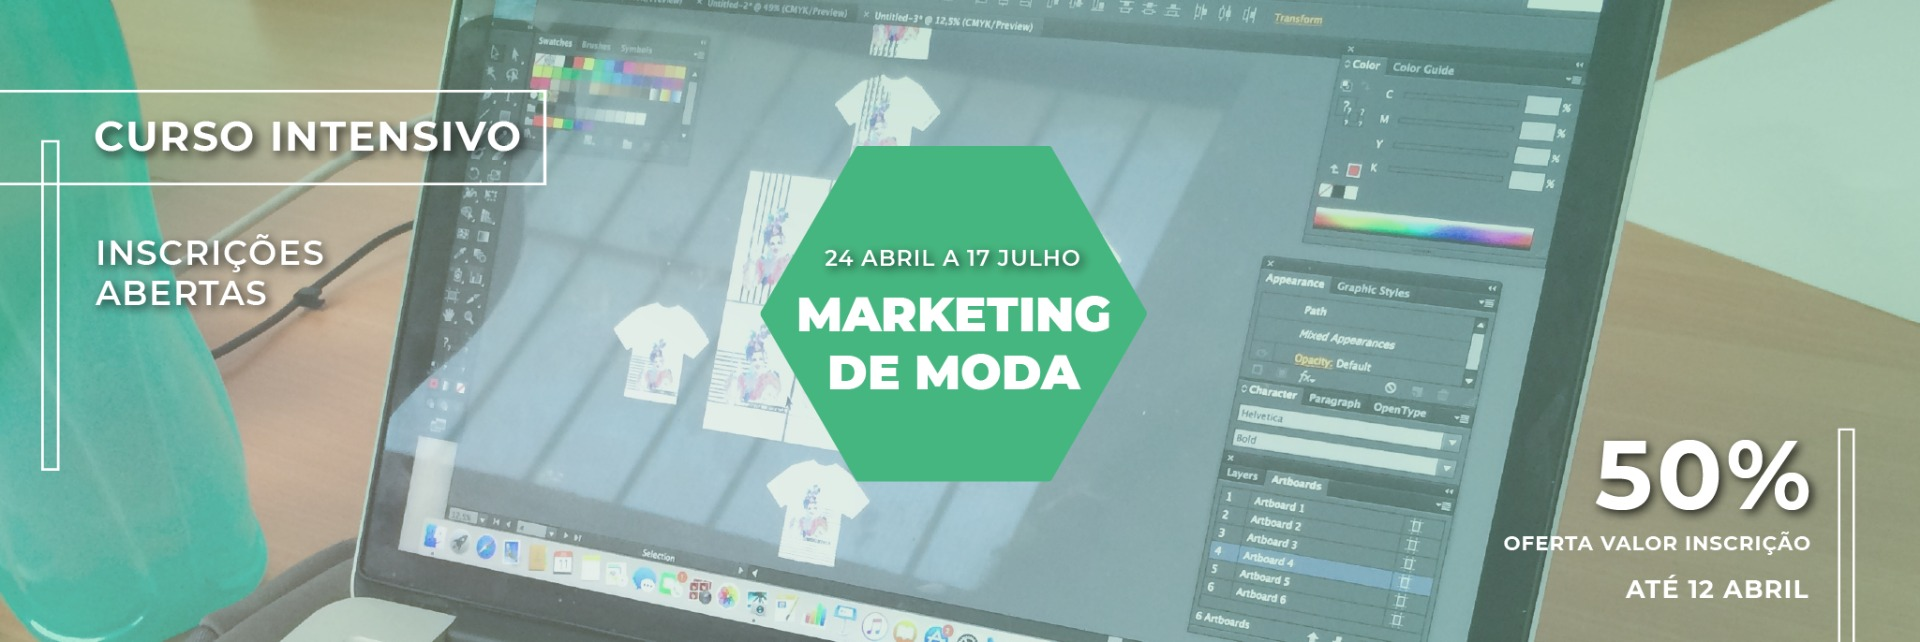 Curso Intensivo Marketing de Moda